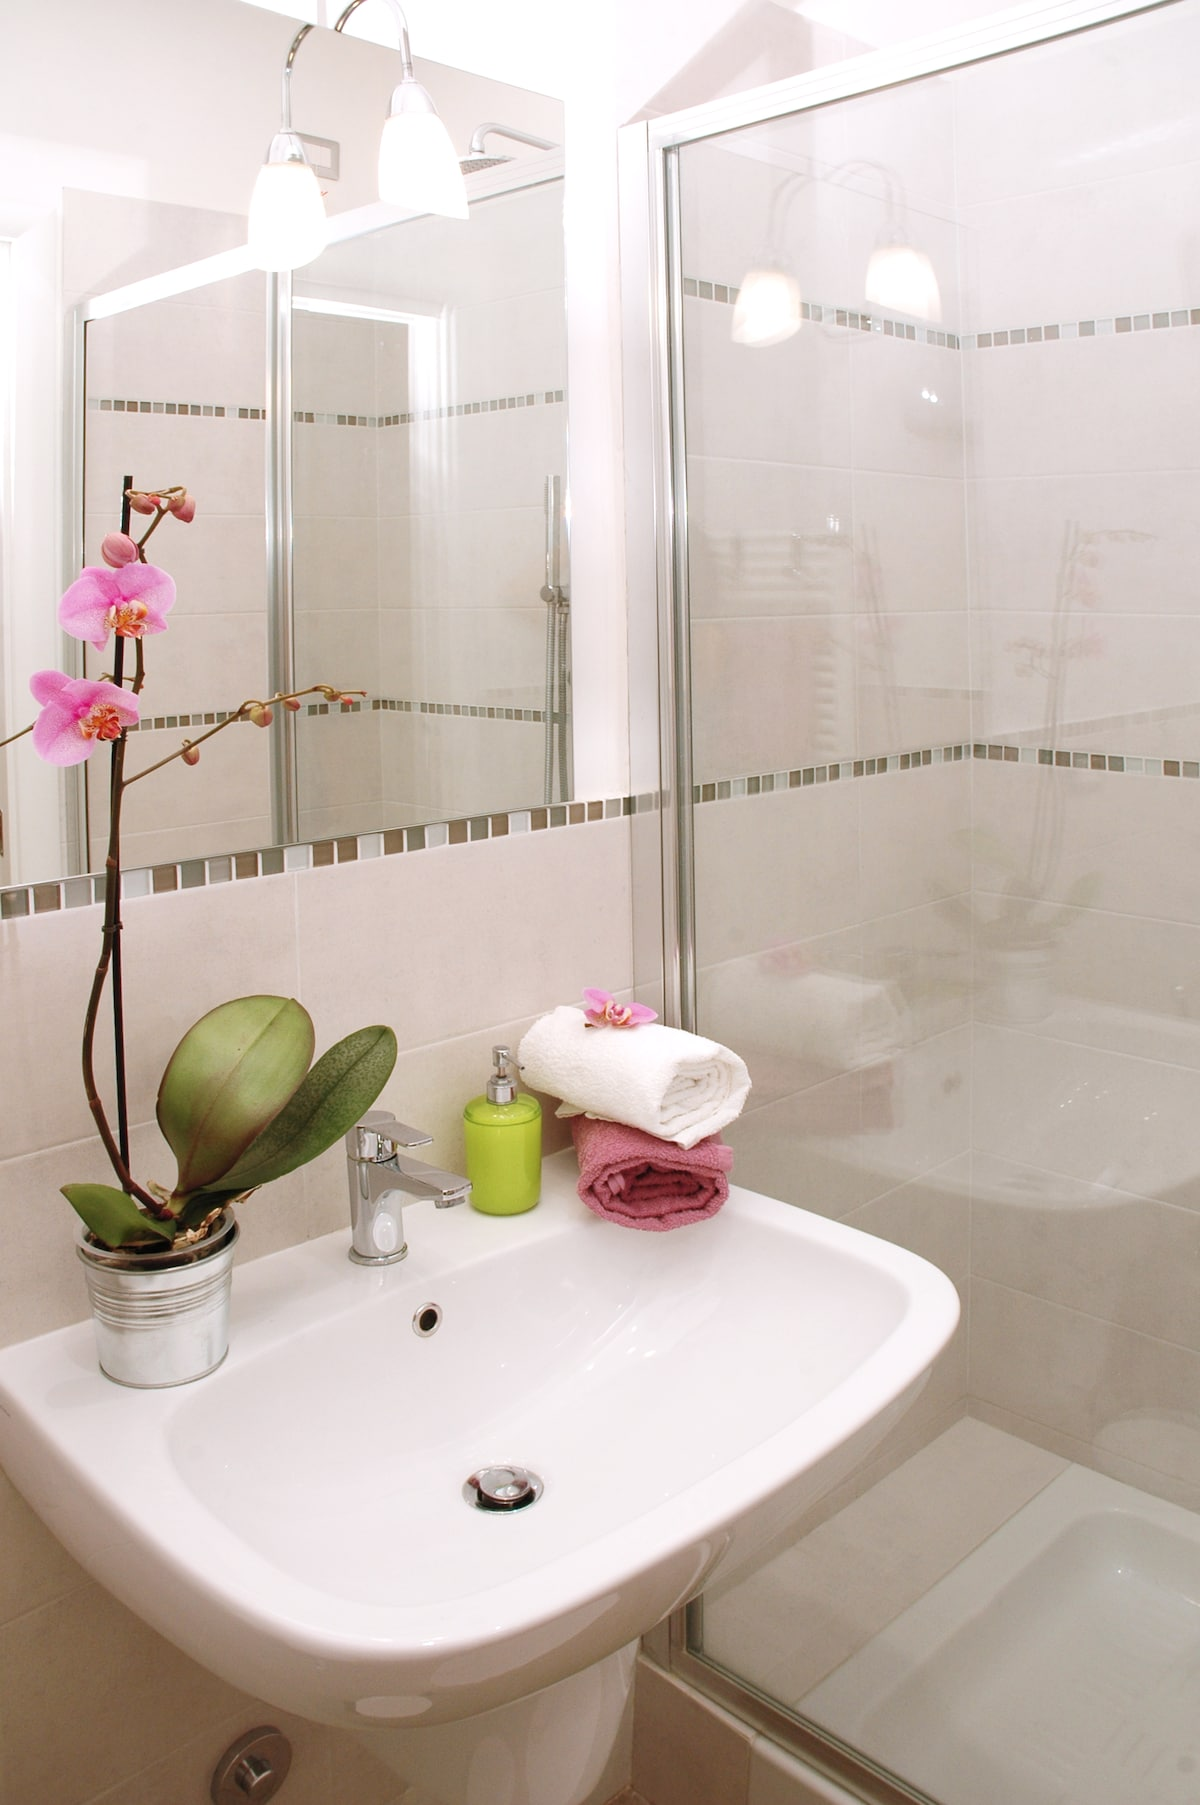 Also in the bathroom everything is new and clean with a supershower for two!